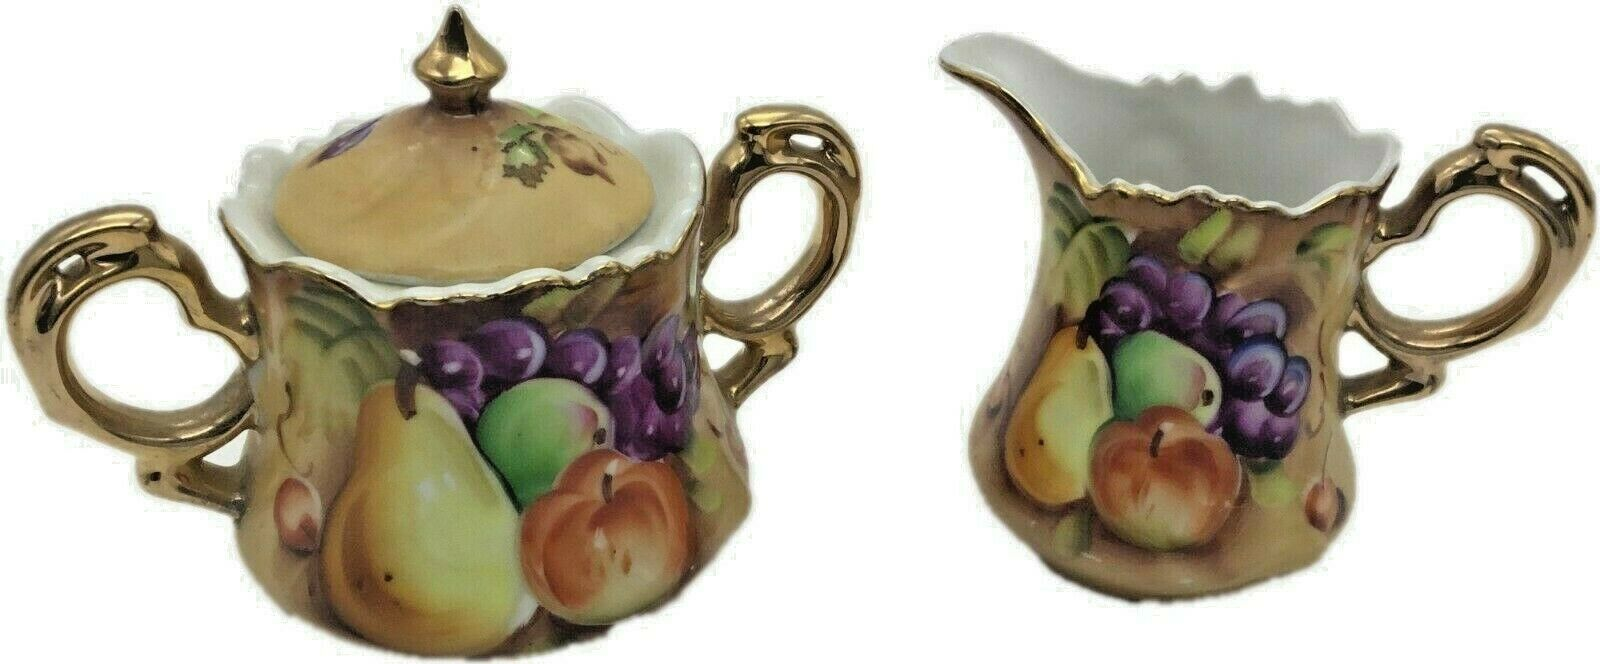 1950s Lefton Heritage Fruit Brown Lidded Sugar Bowl and Creamer, - $49.99